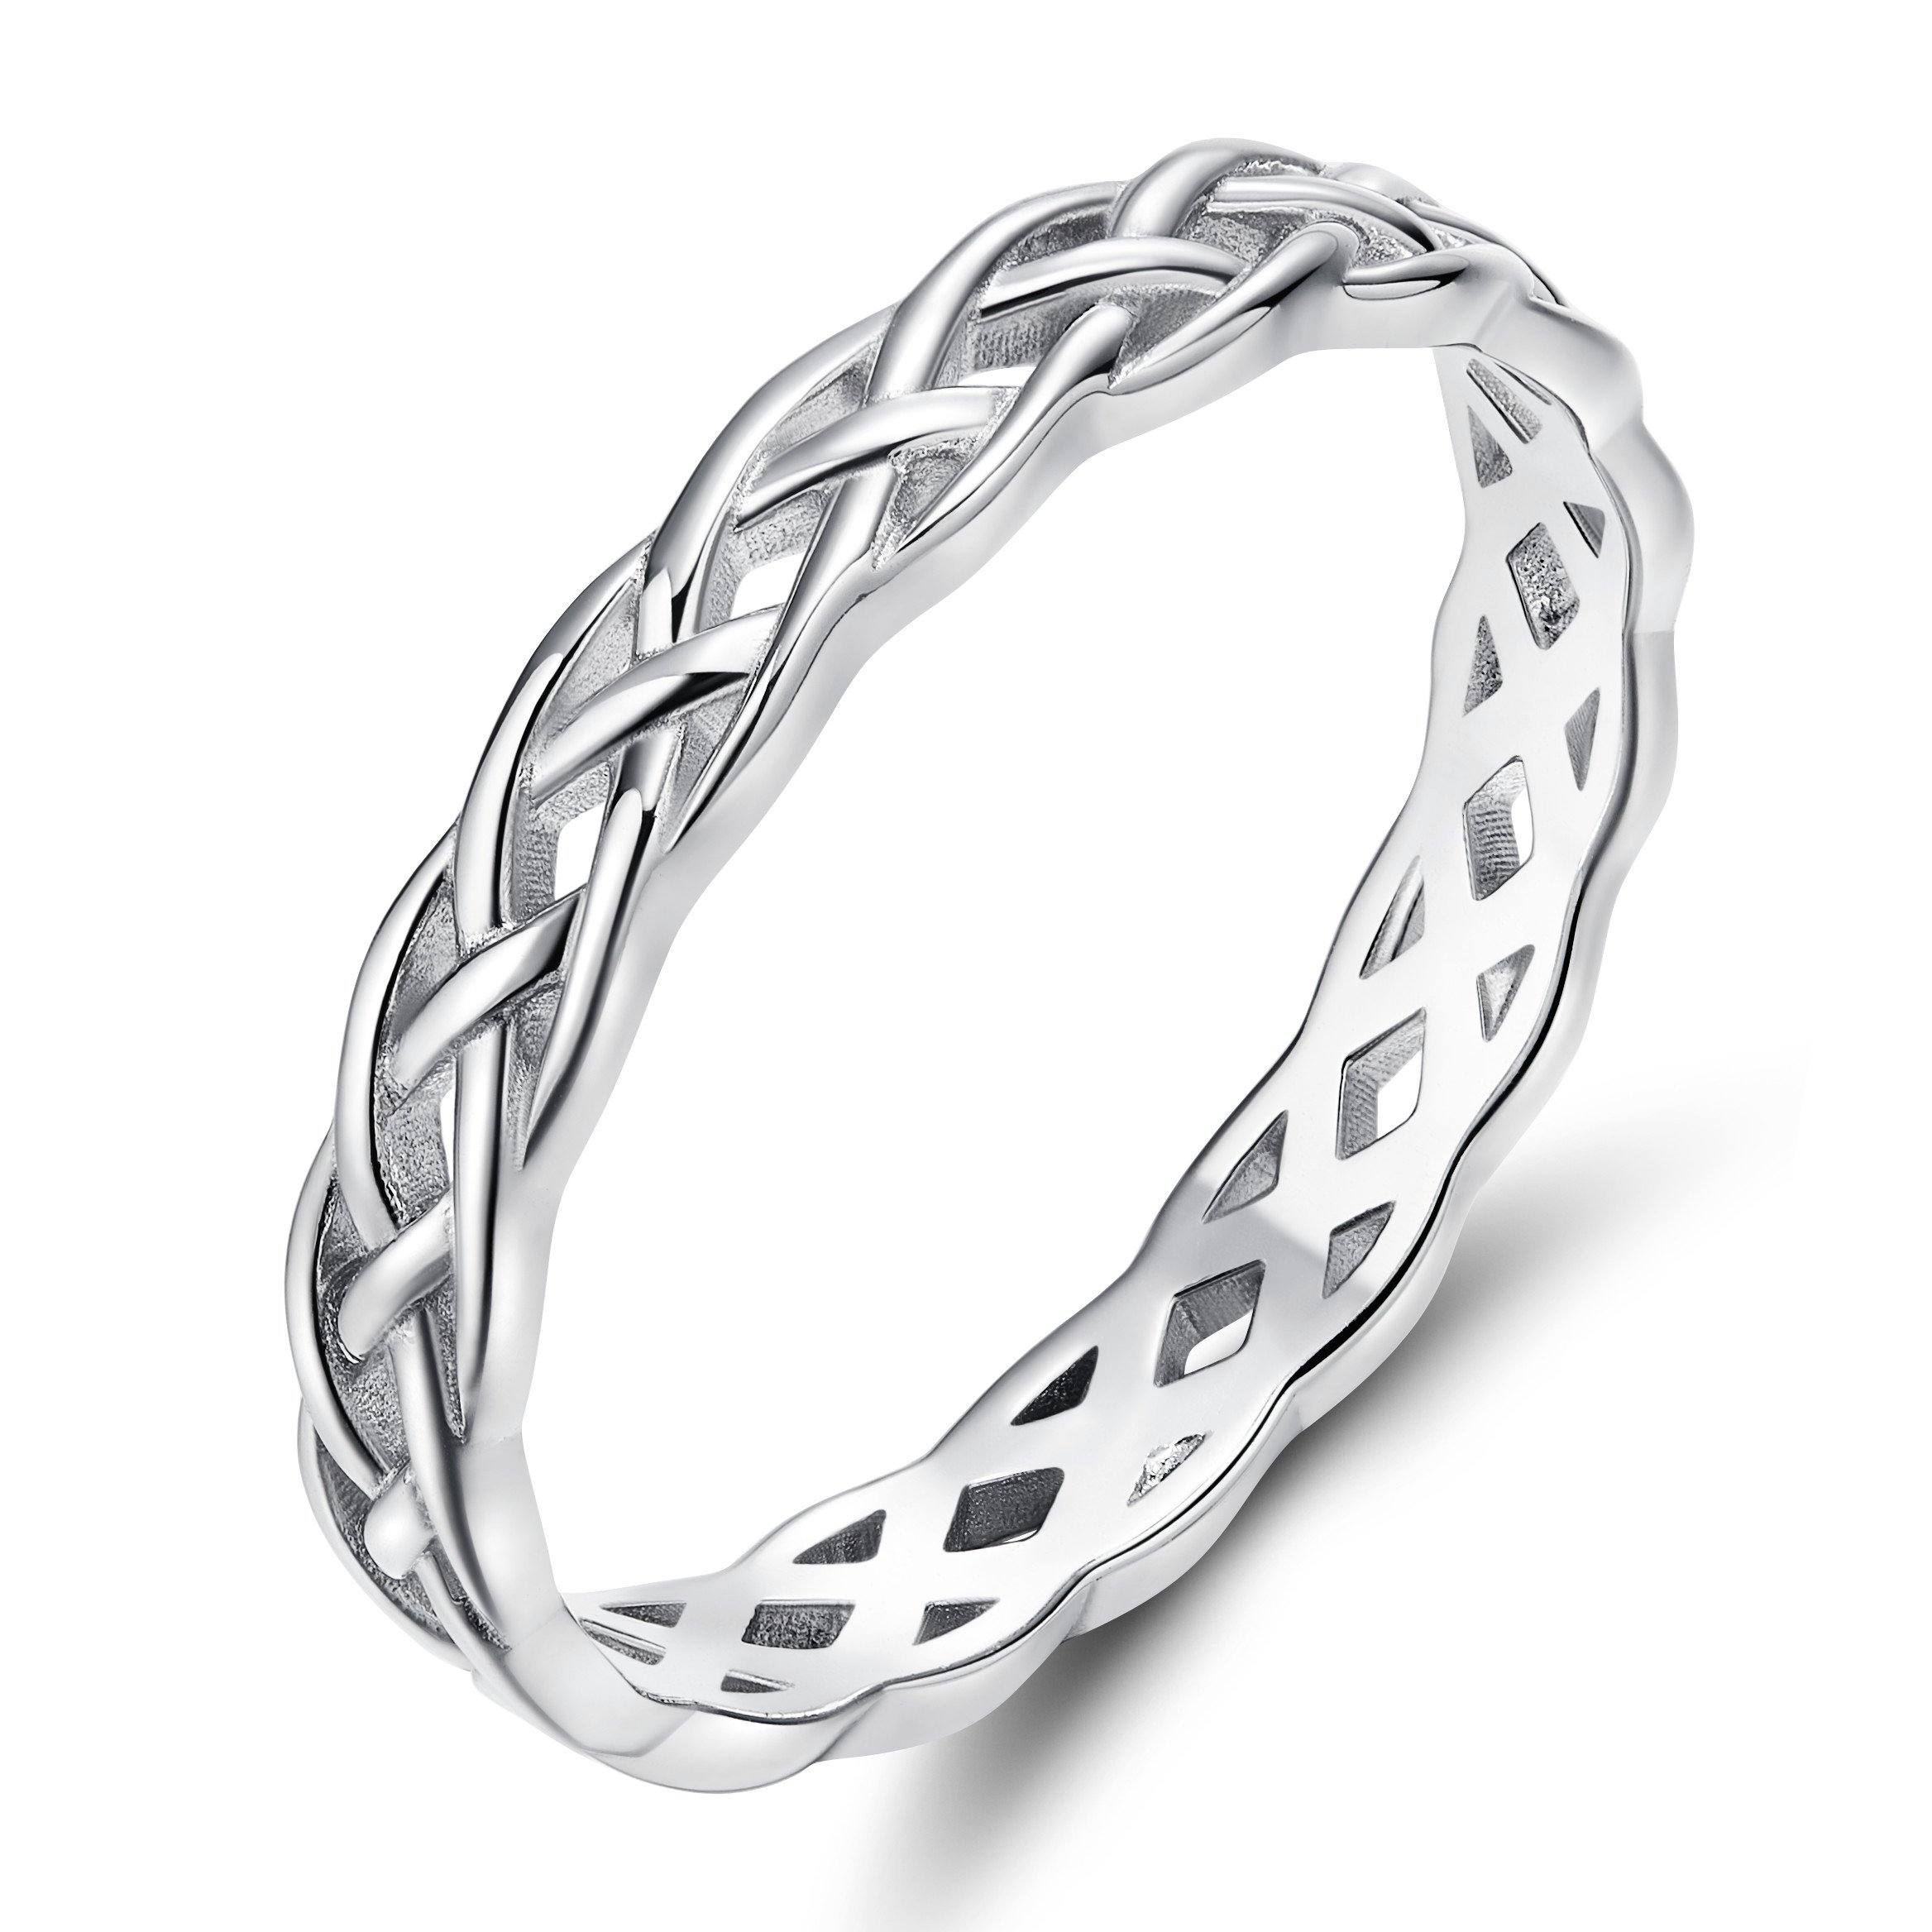 SOMEN TUNGSTEN 925 Sterling Silver Ring 4mm Eternity Knot Wedding Band for Women Size 4.5